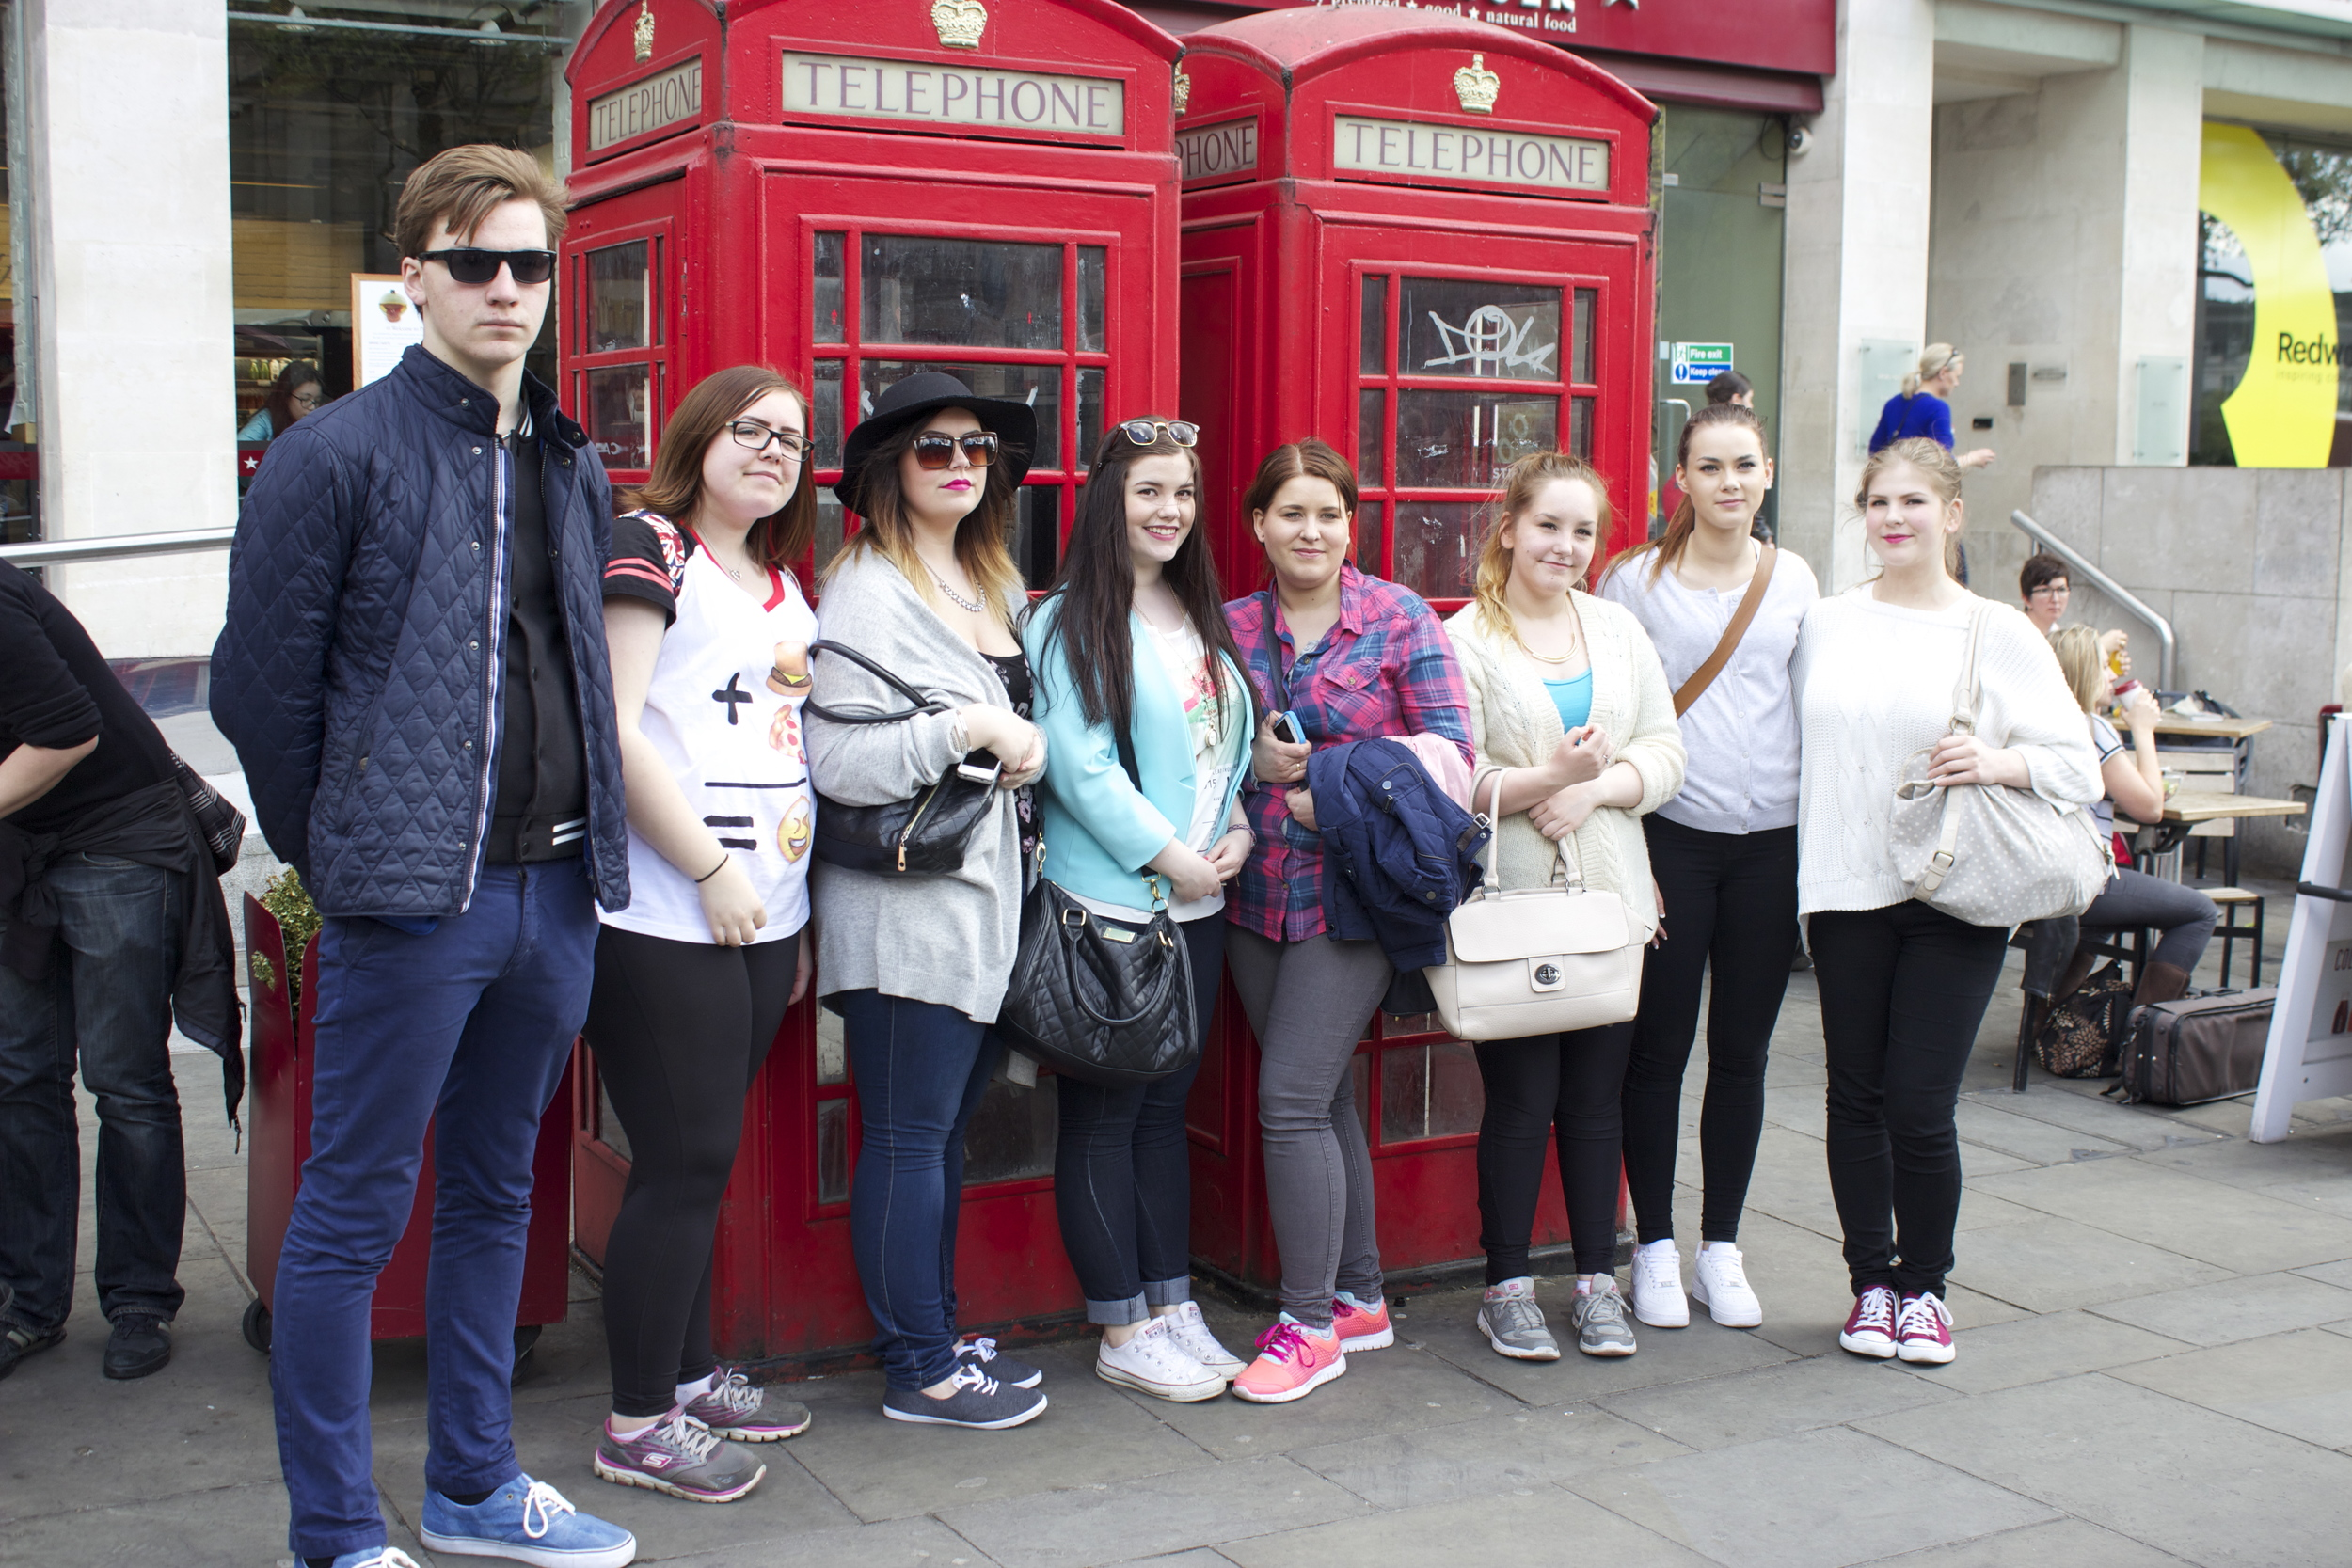 Students from Lofoten explore London. Photo: Marte Lundberg